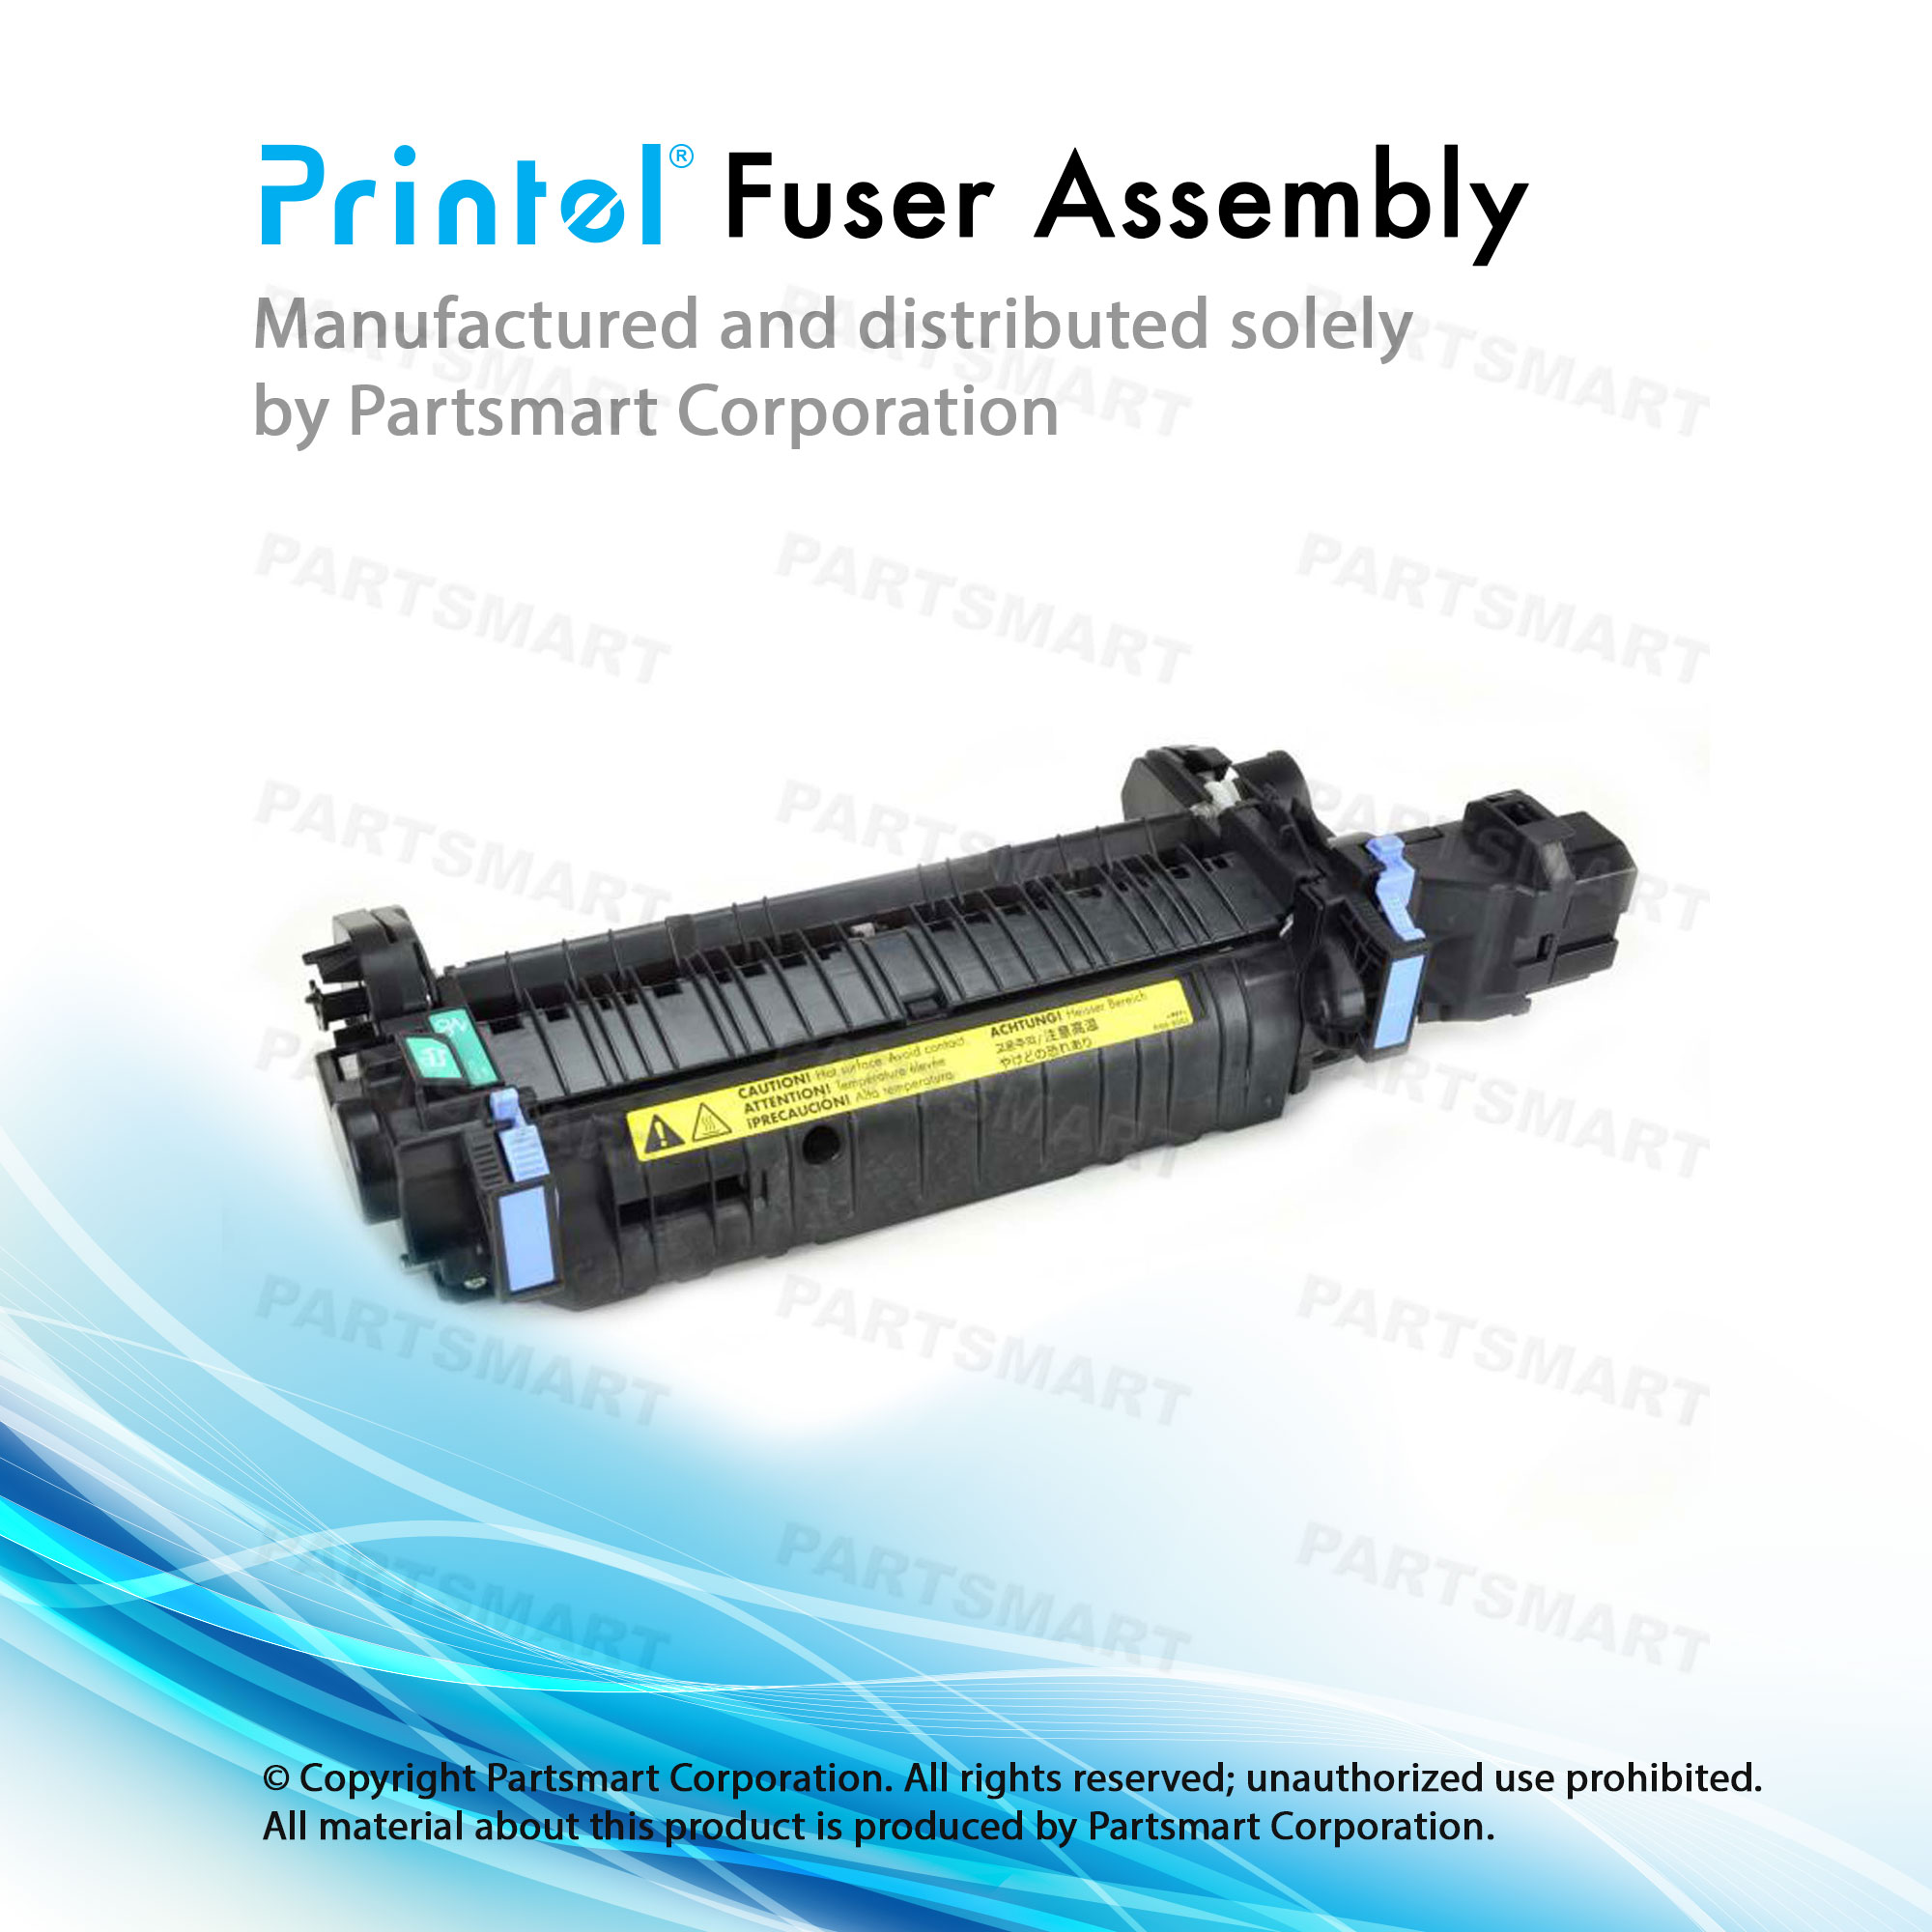 RM1-5550-000 CE246A Fuser Assembly (110V) Purchase HP Color LaserJet CP4025